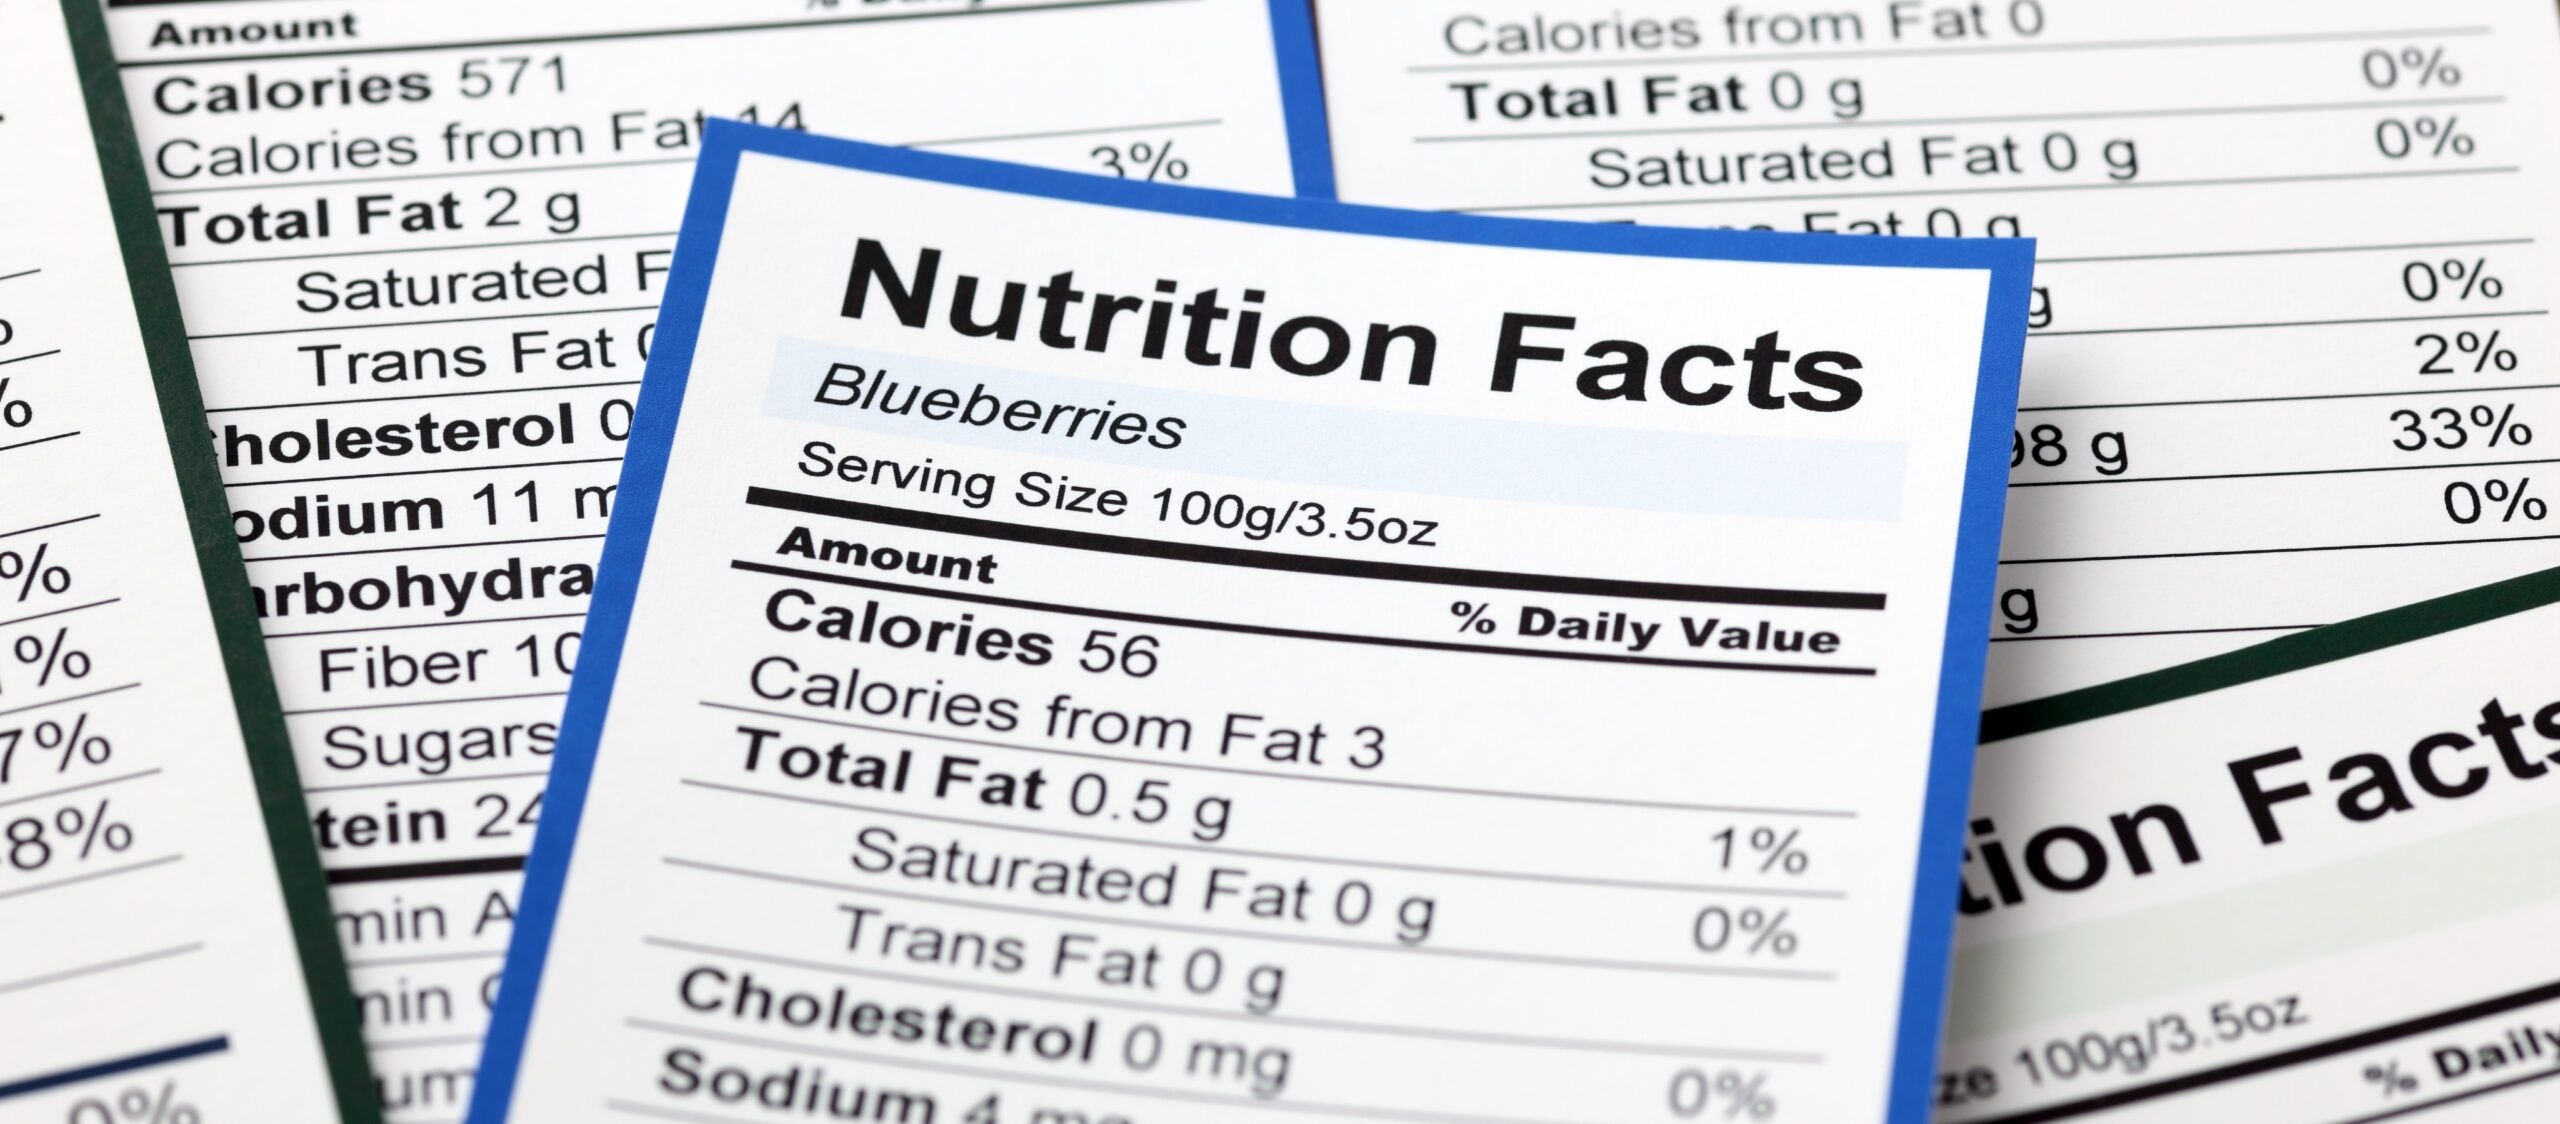 Nutrition Facts Panel Updates